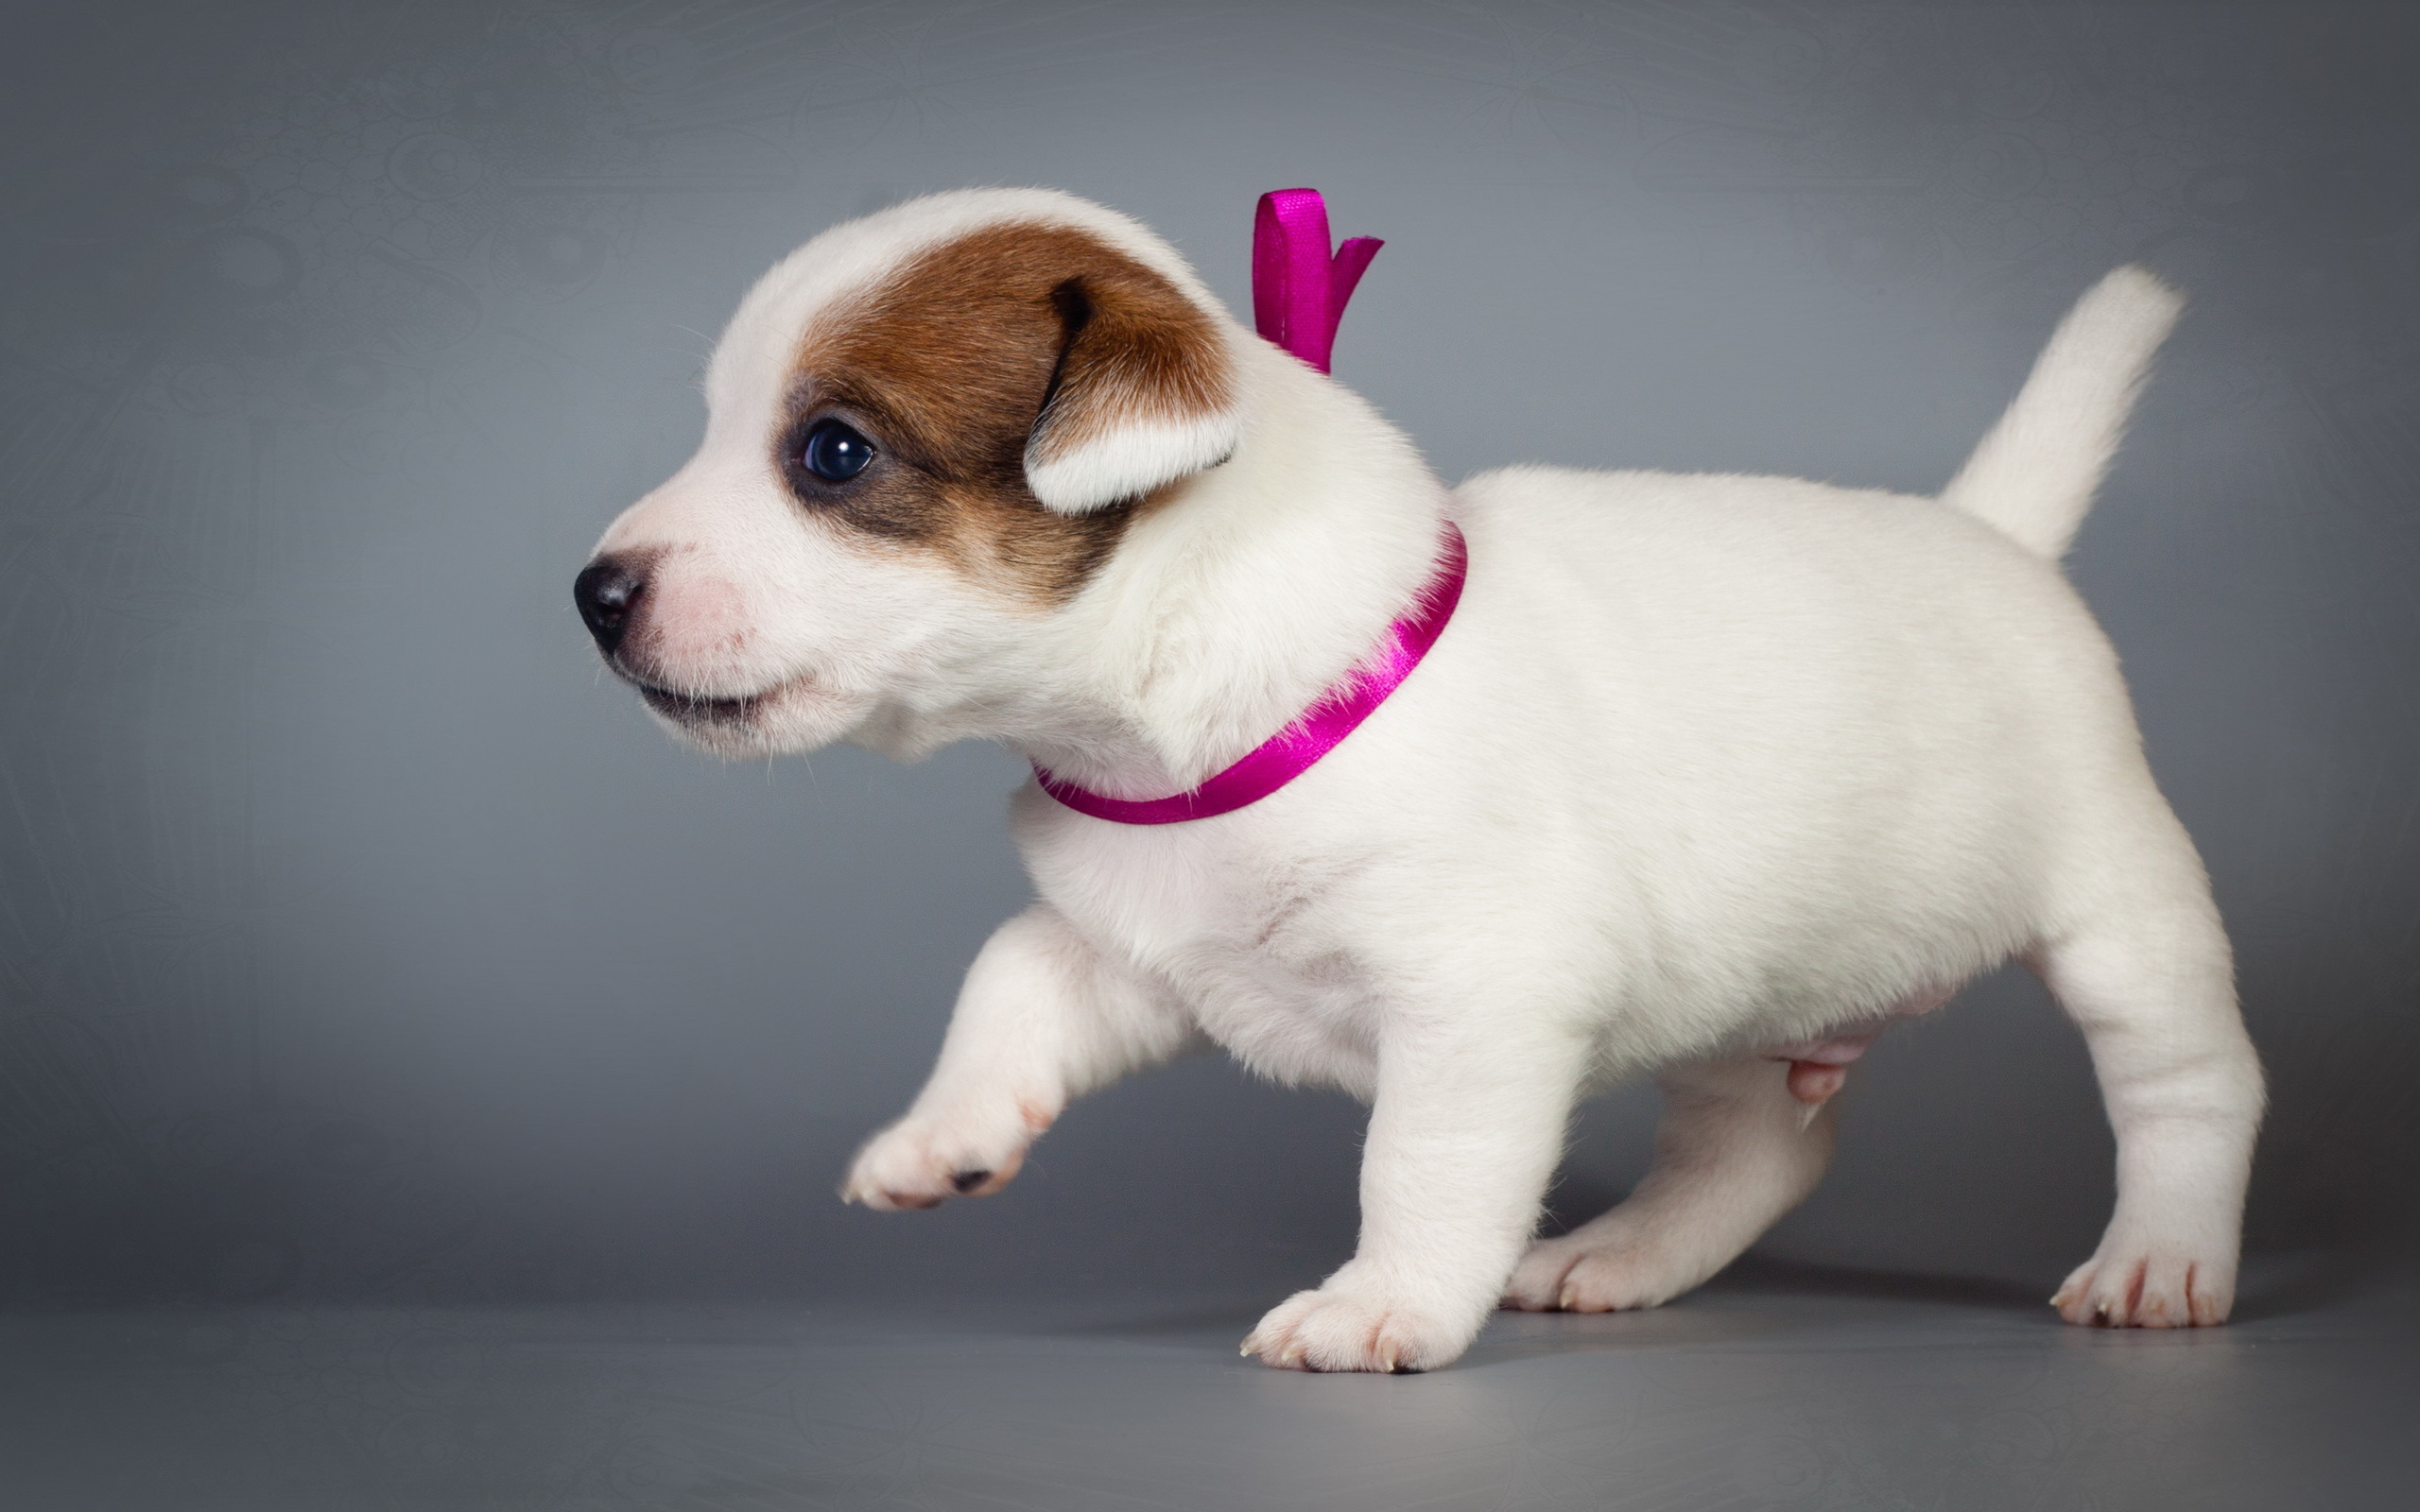 Dogs Jack Russell terrier Puppy Animals